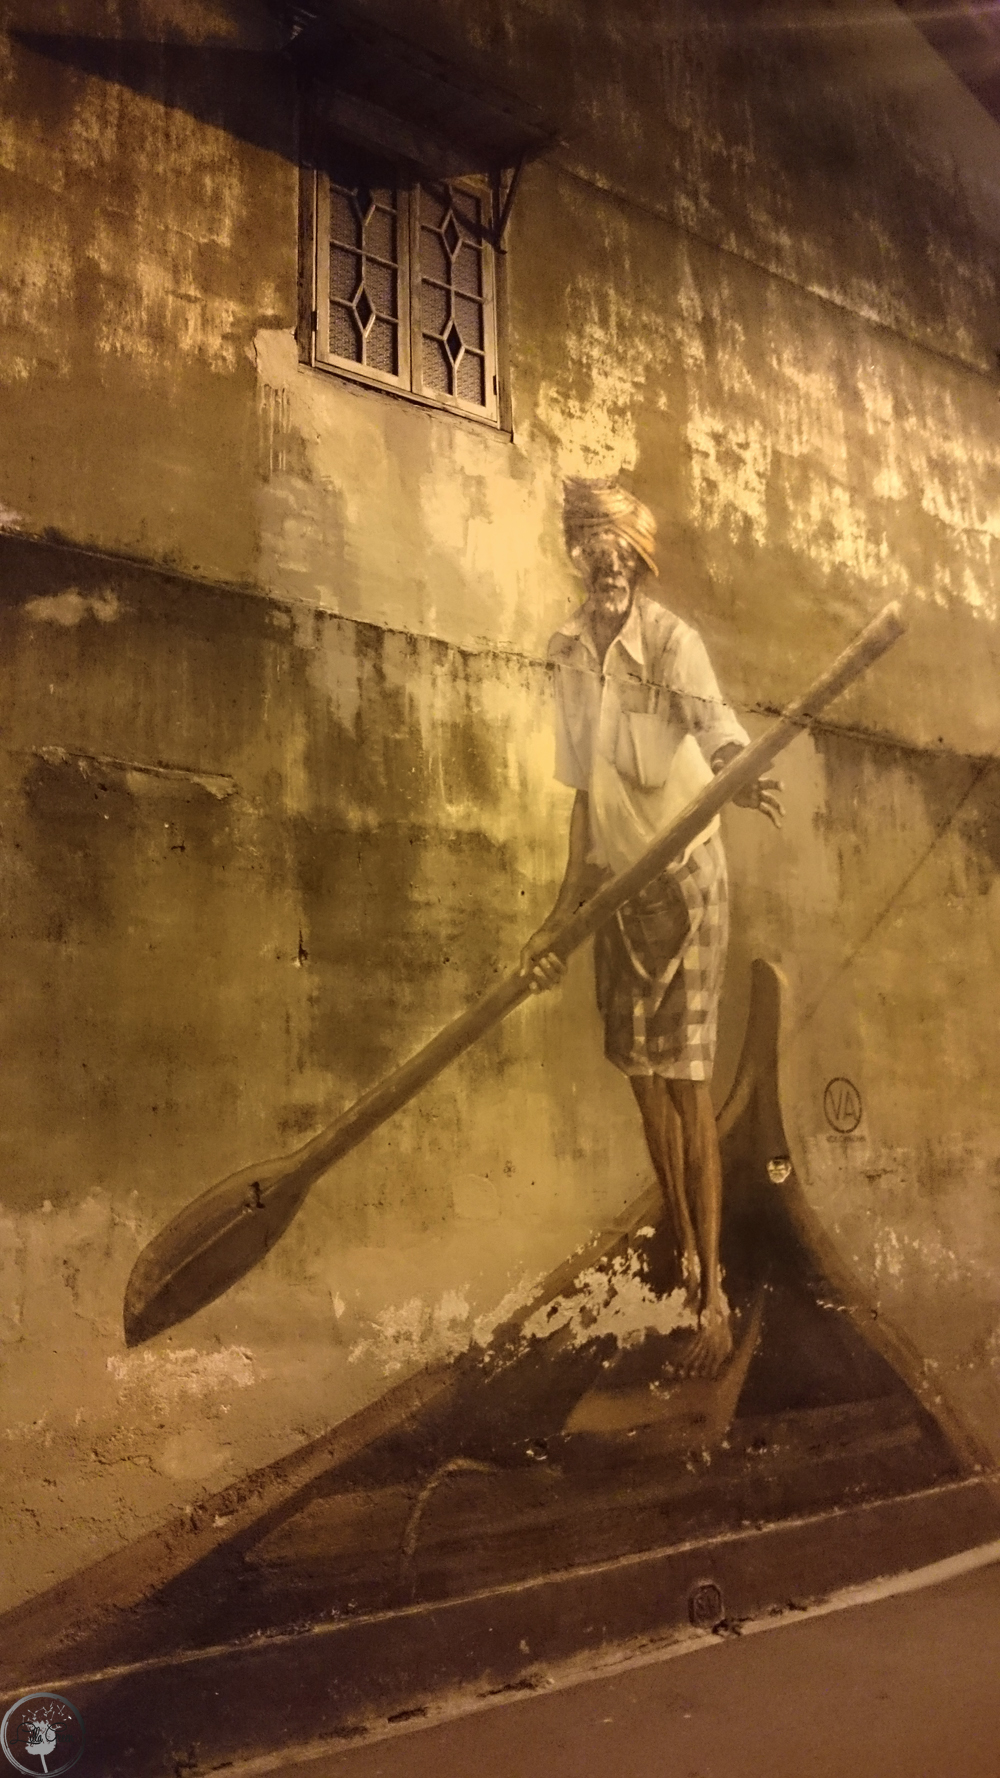 The Boat Man, Street Art Penang